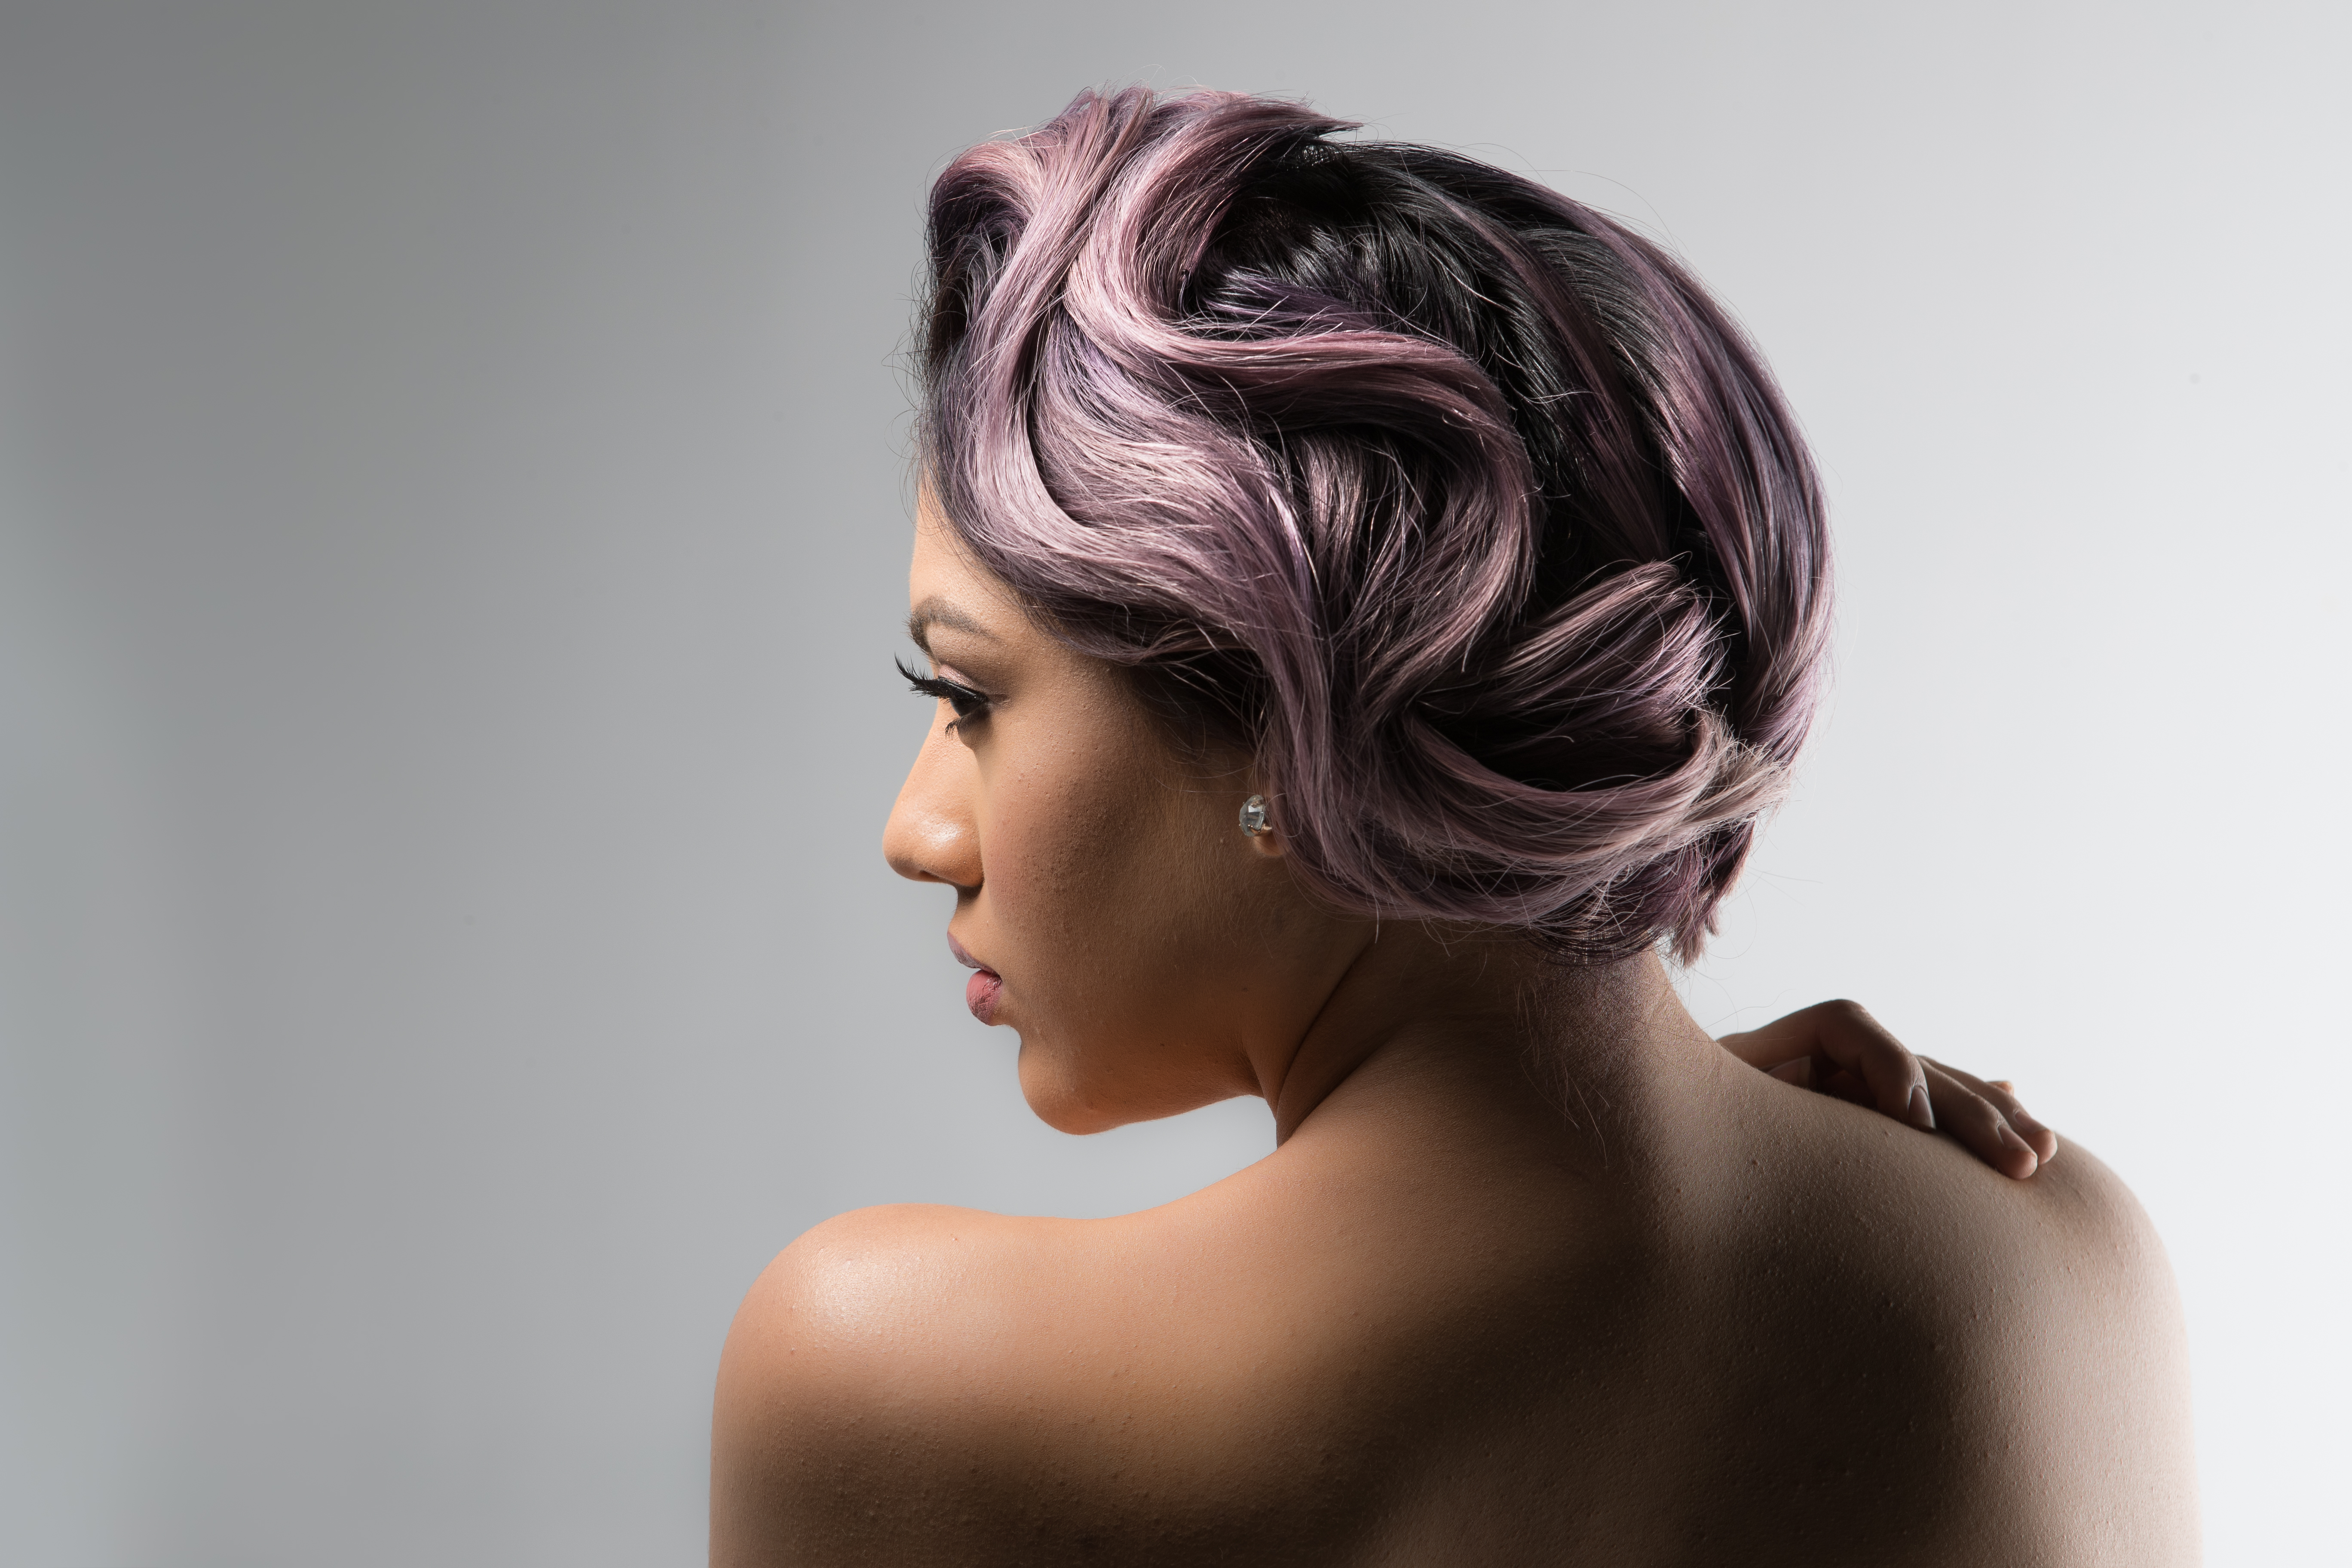 Model with pastel-lilac hair that is swept up in a wavy updo from another angle